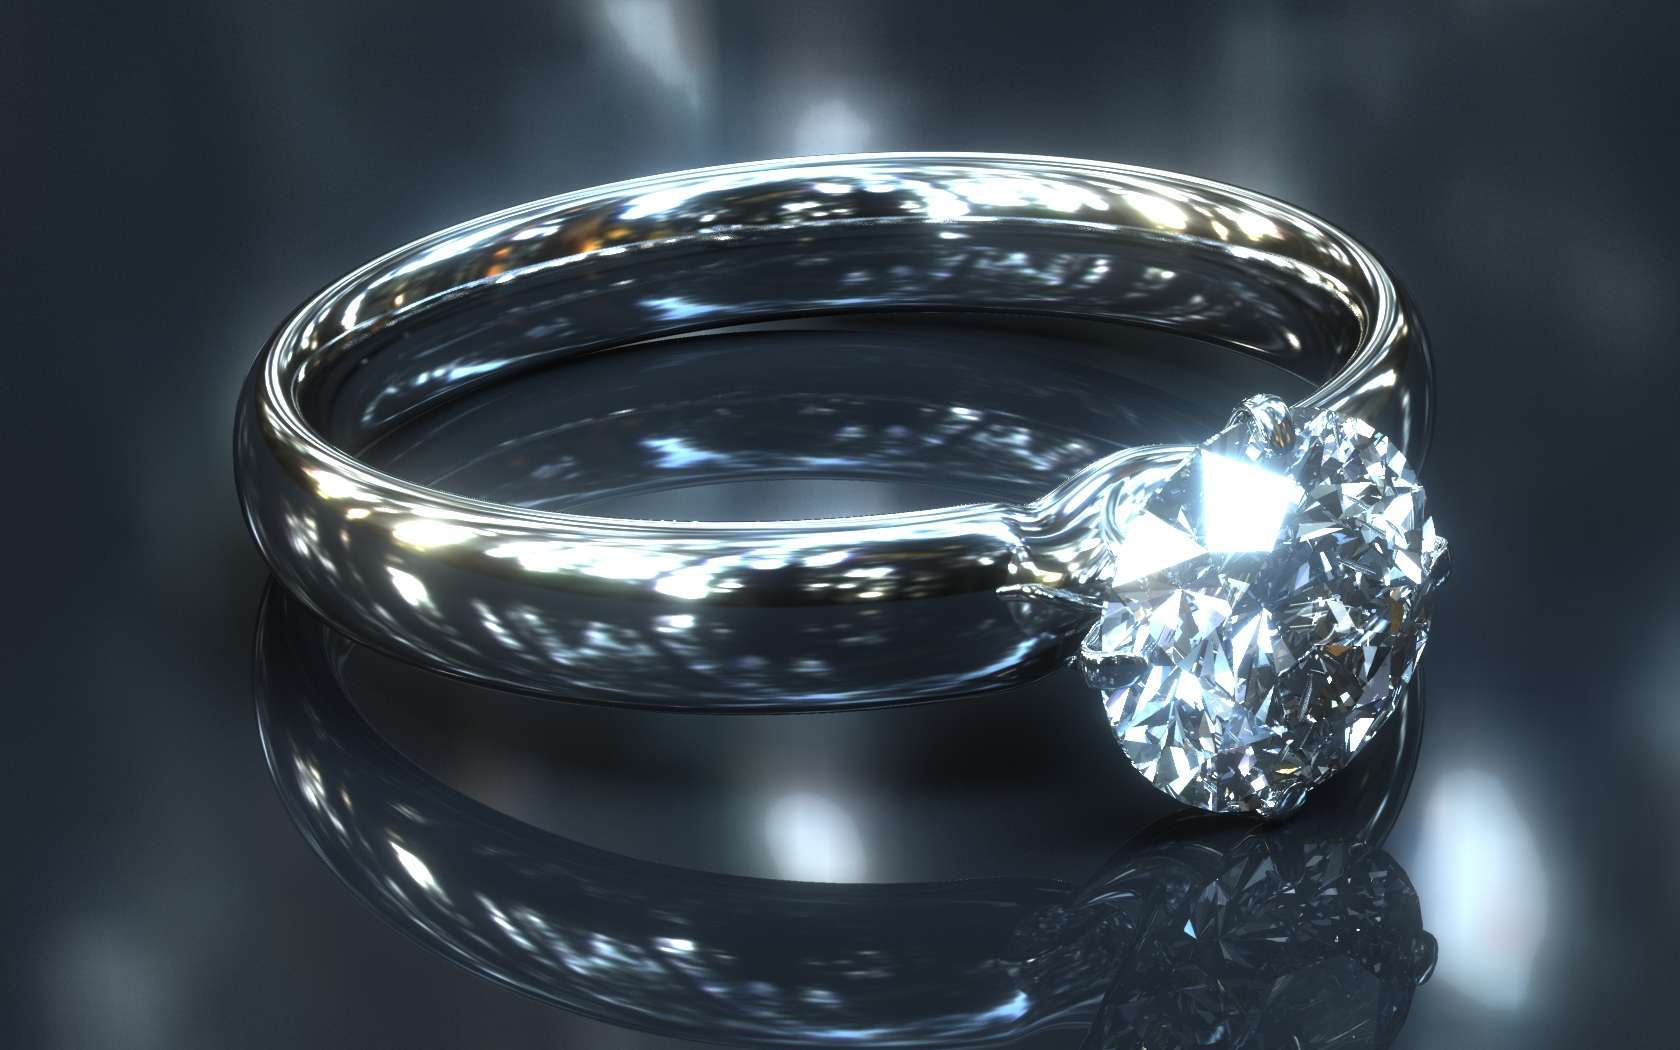 Different Types of Placeholder Rings For Engagement Rings